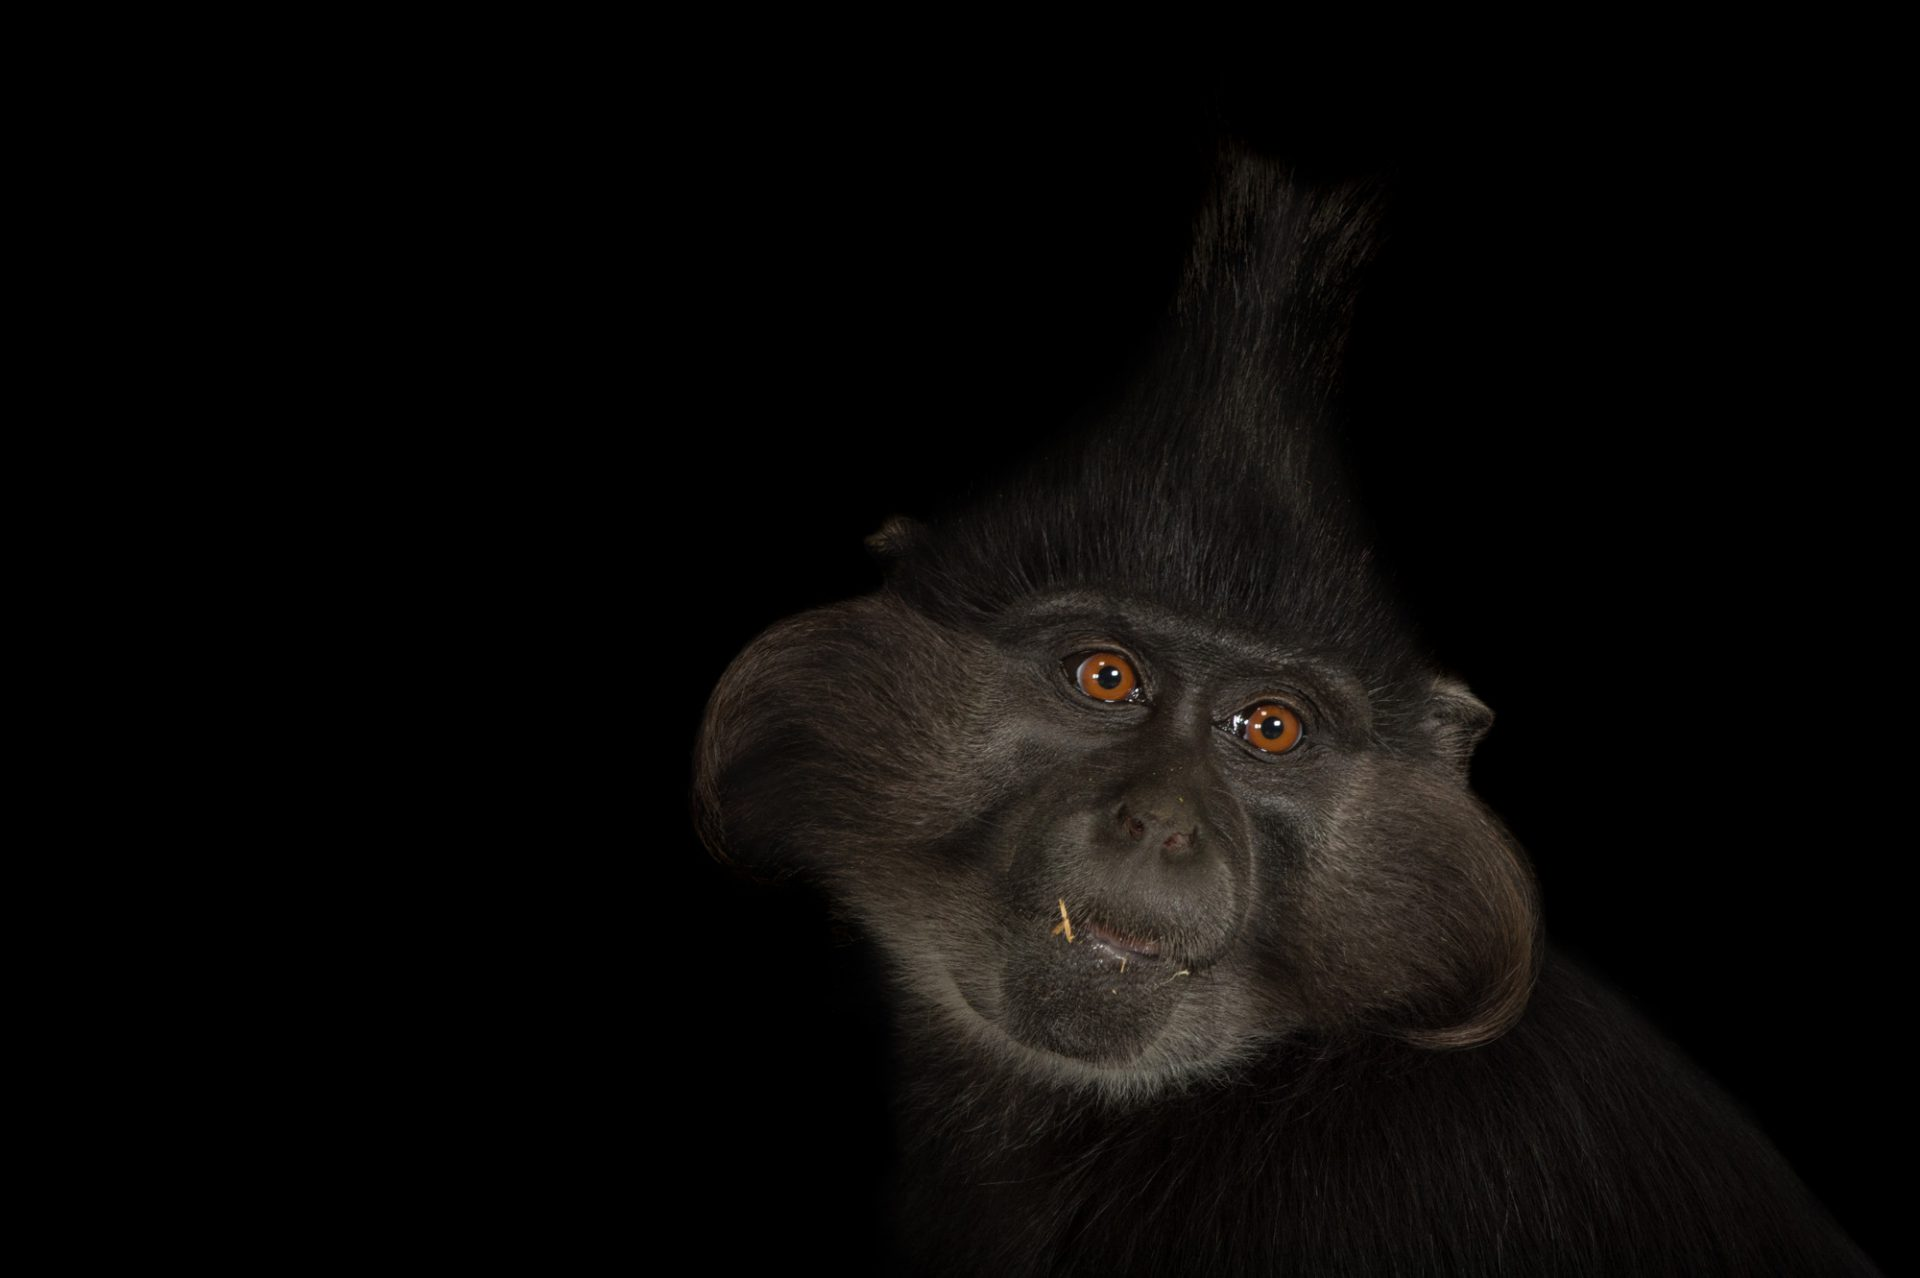 A black crested mangabey (Lophocebus aterrimus) at the Chattanooga Zoo.